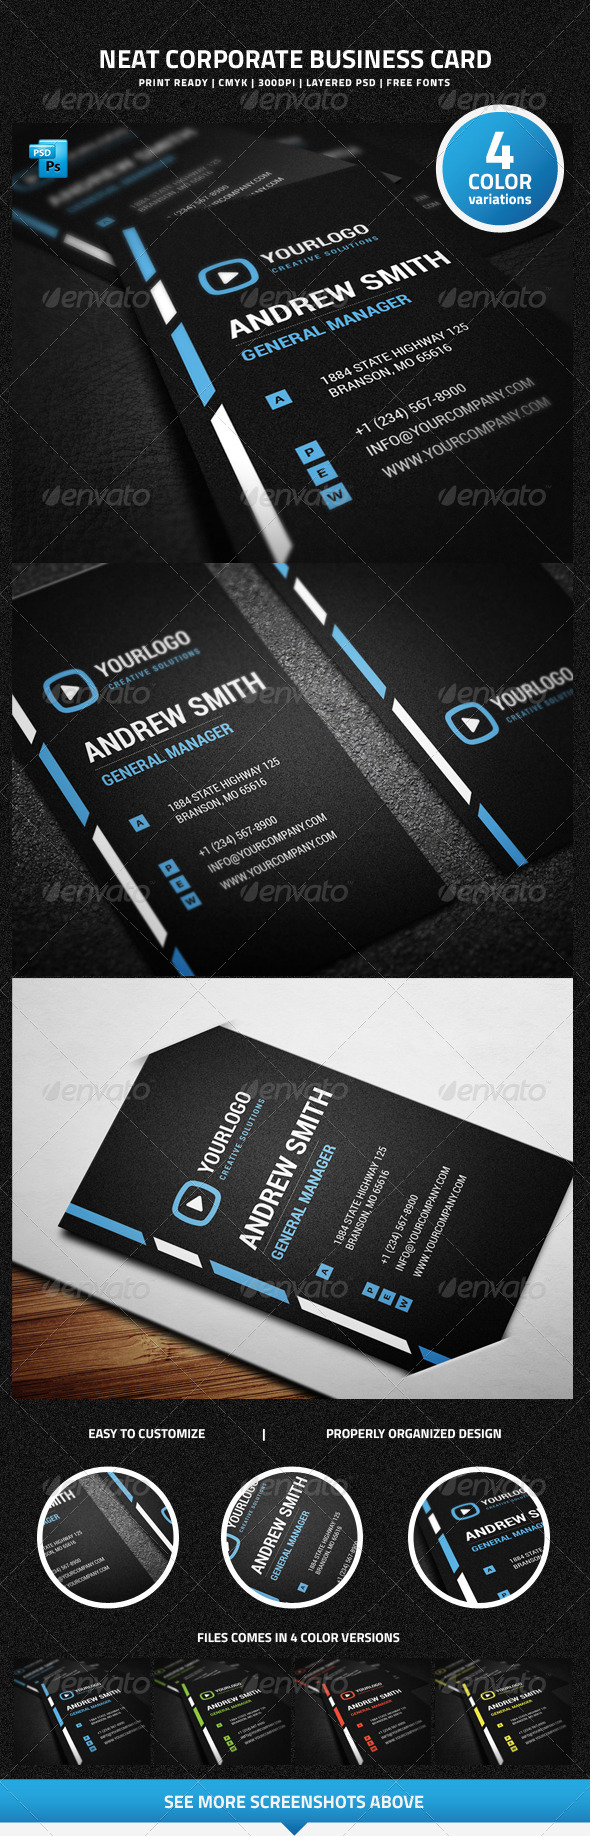 Neat Corporate Business Card - 26 - Corporate Business Cards